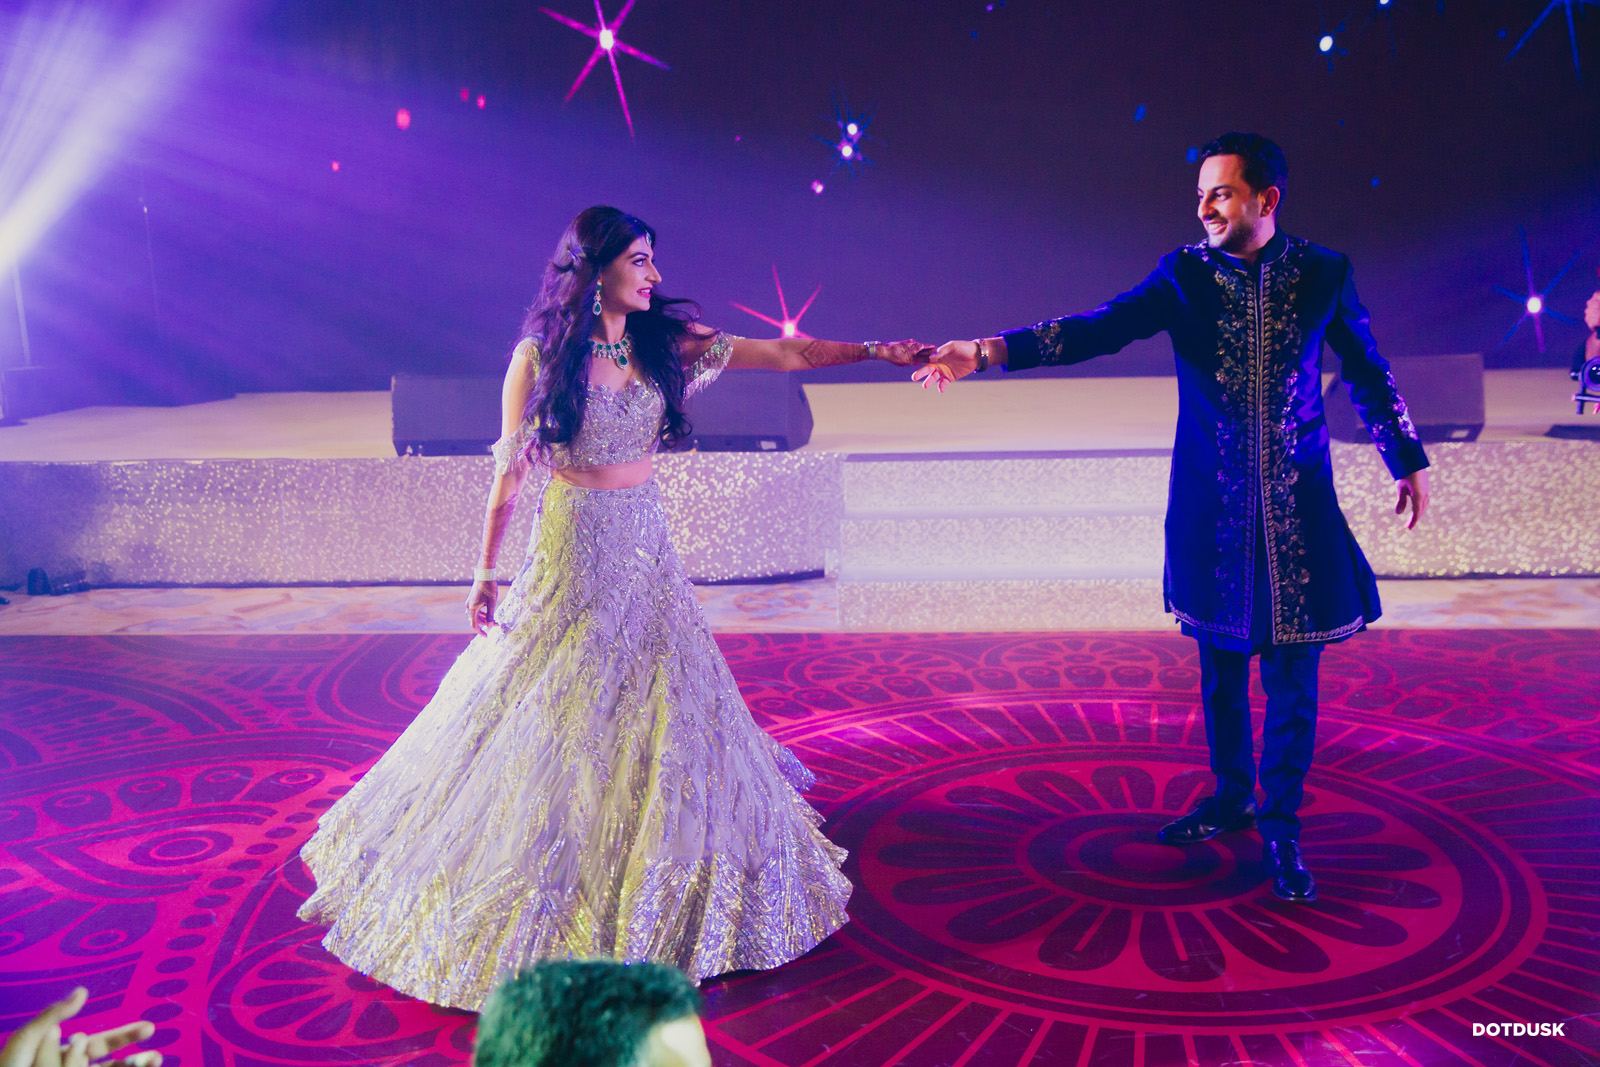 WEDDINGS & CELEBRATIONS - We direct, choreograph & manage sparkling, memorable shows for weddings, sangeets and special occasions, including the couple's first dance and the bride's solo. Get in touch for rates and packages.